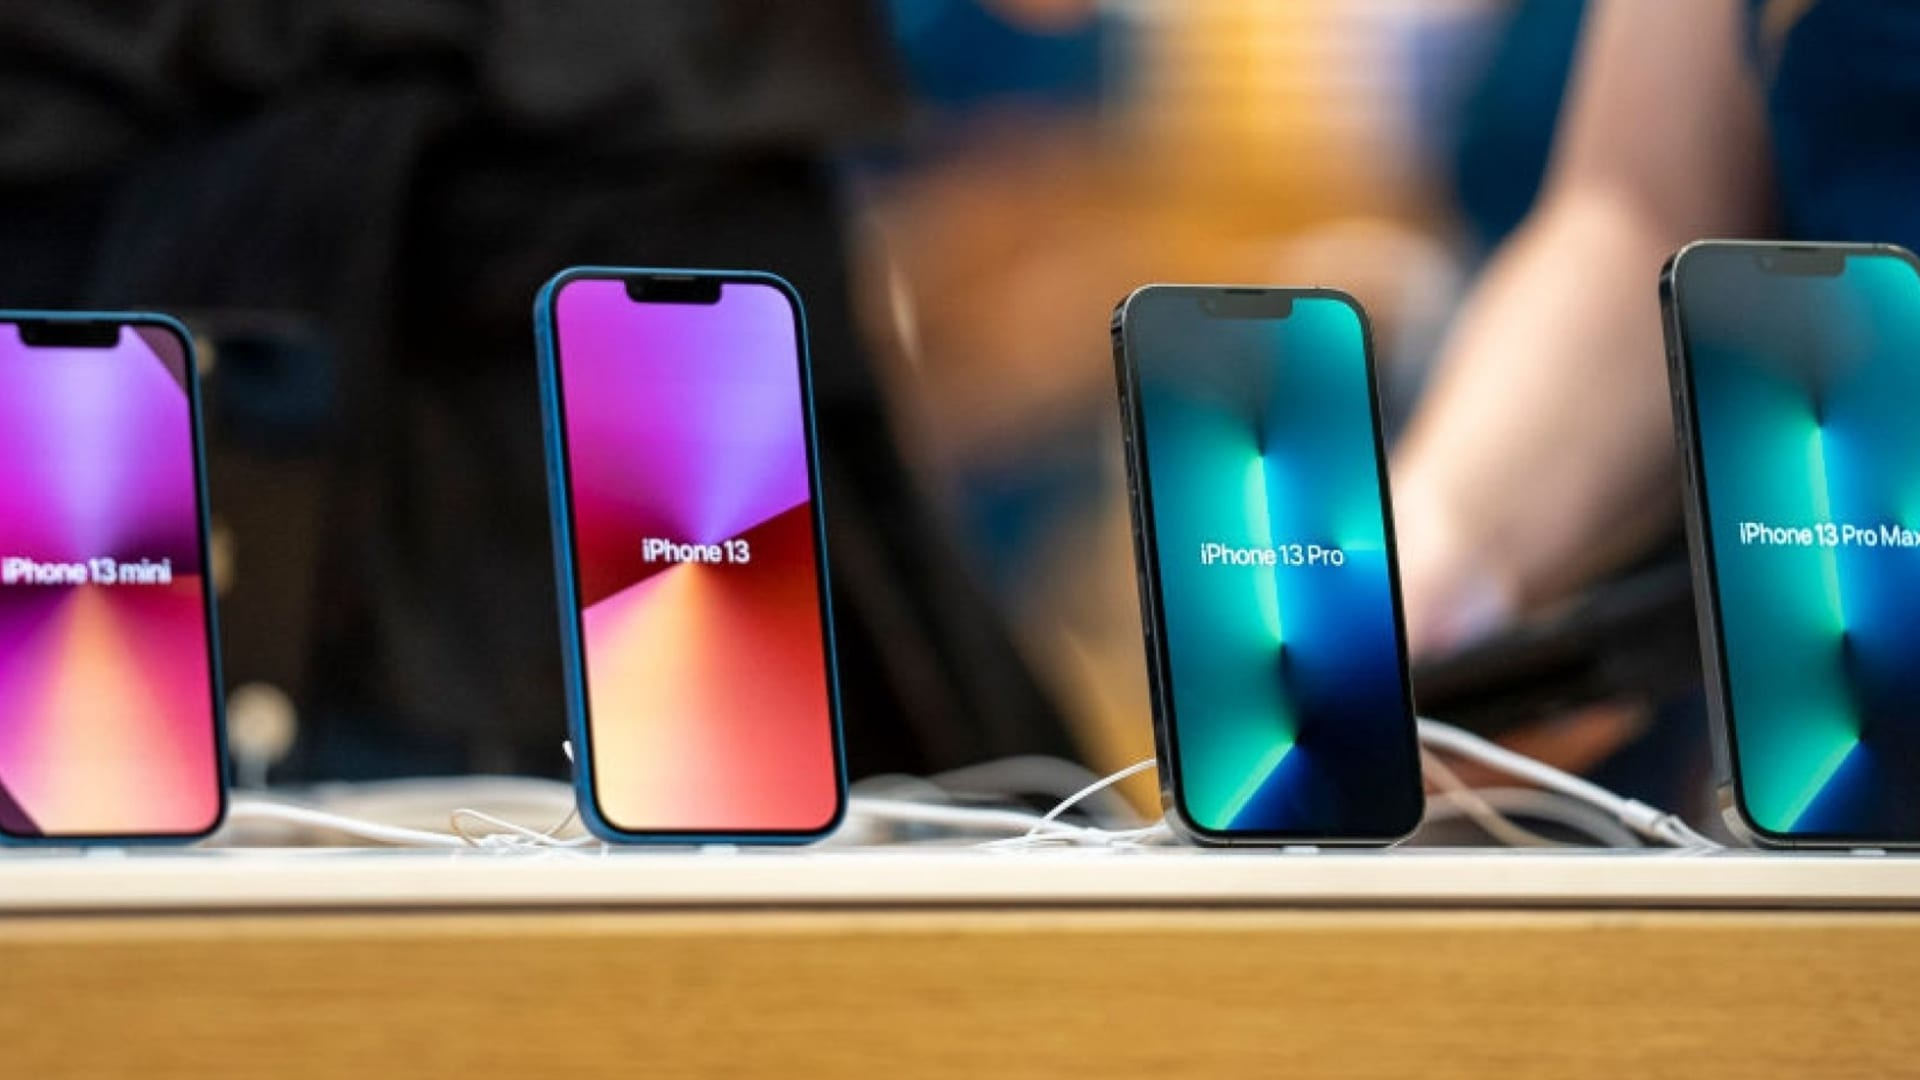 Apple Quietly Included a Remarkable Feature in the iPhone 13 Pro. It Makes All the Difference